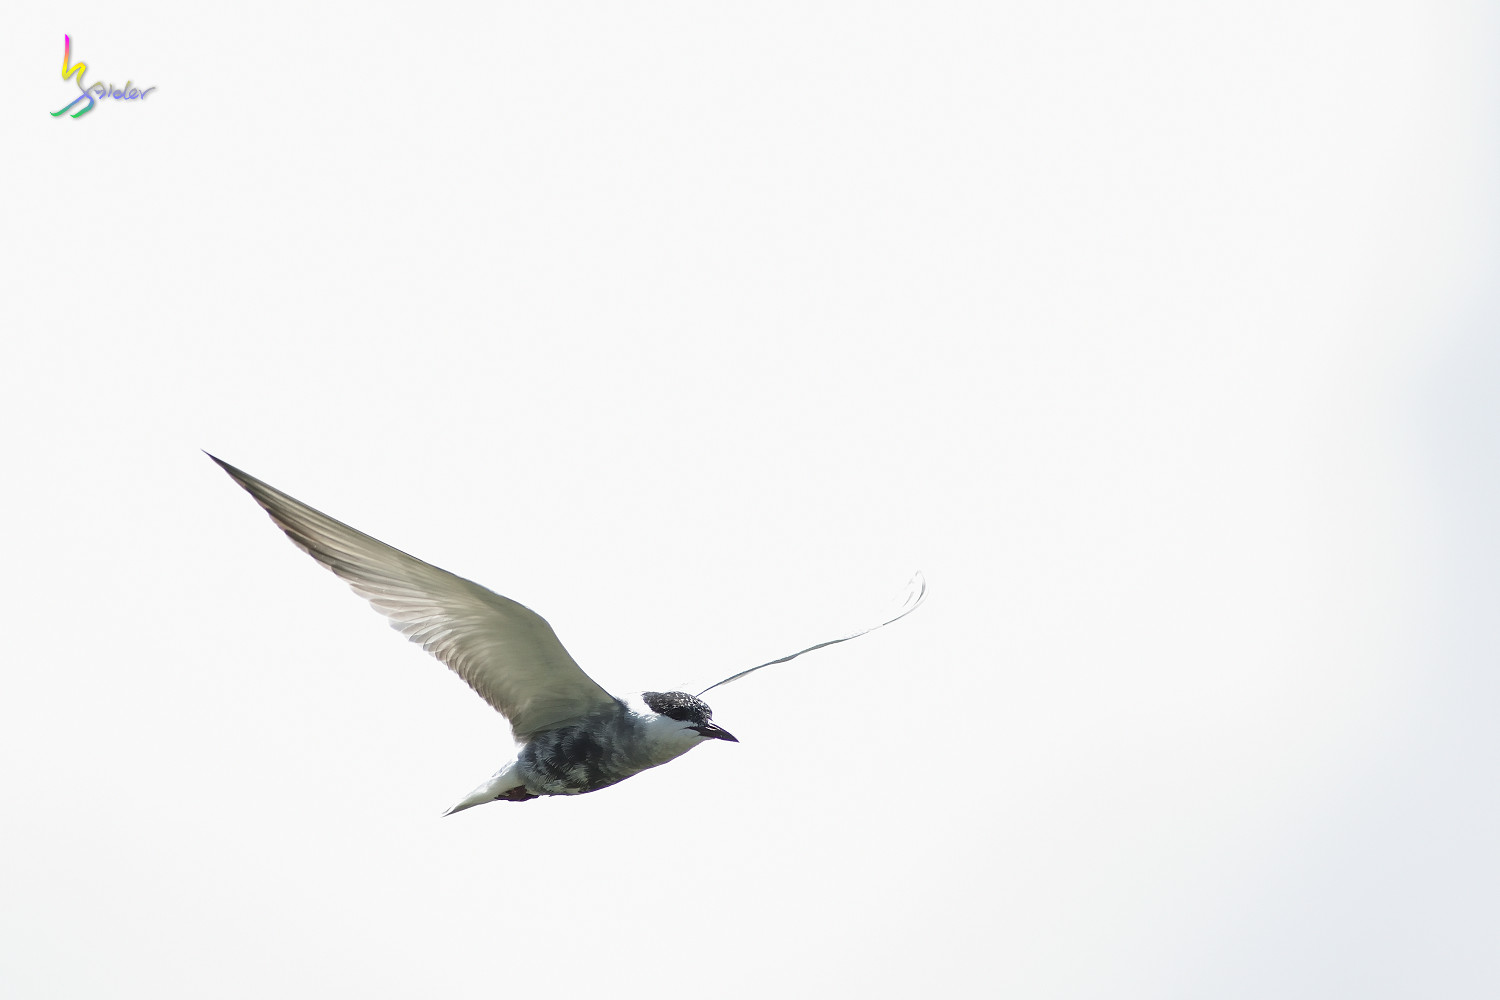 Whiskered_Tern_5054